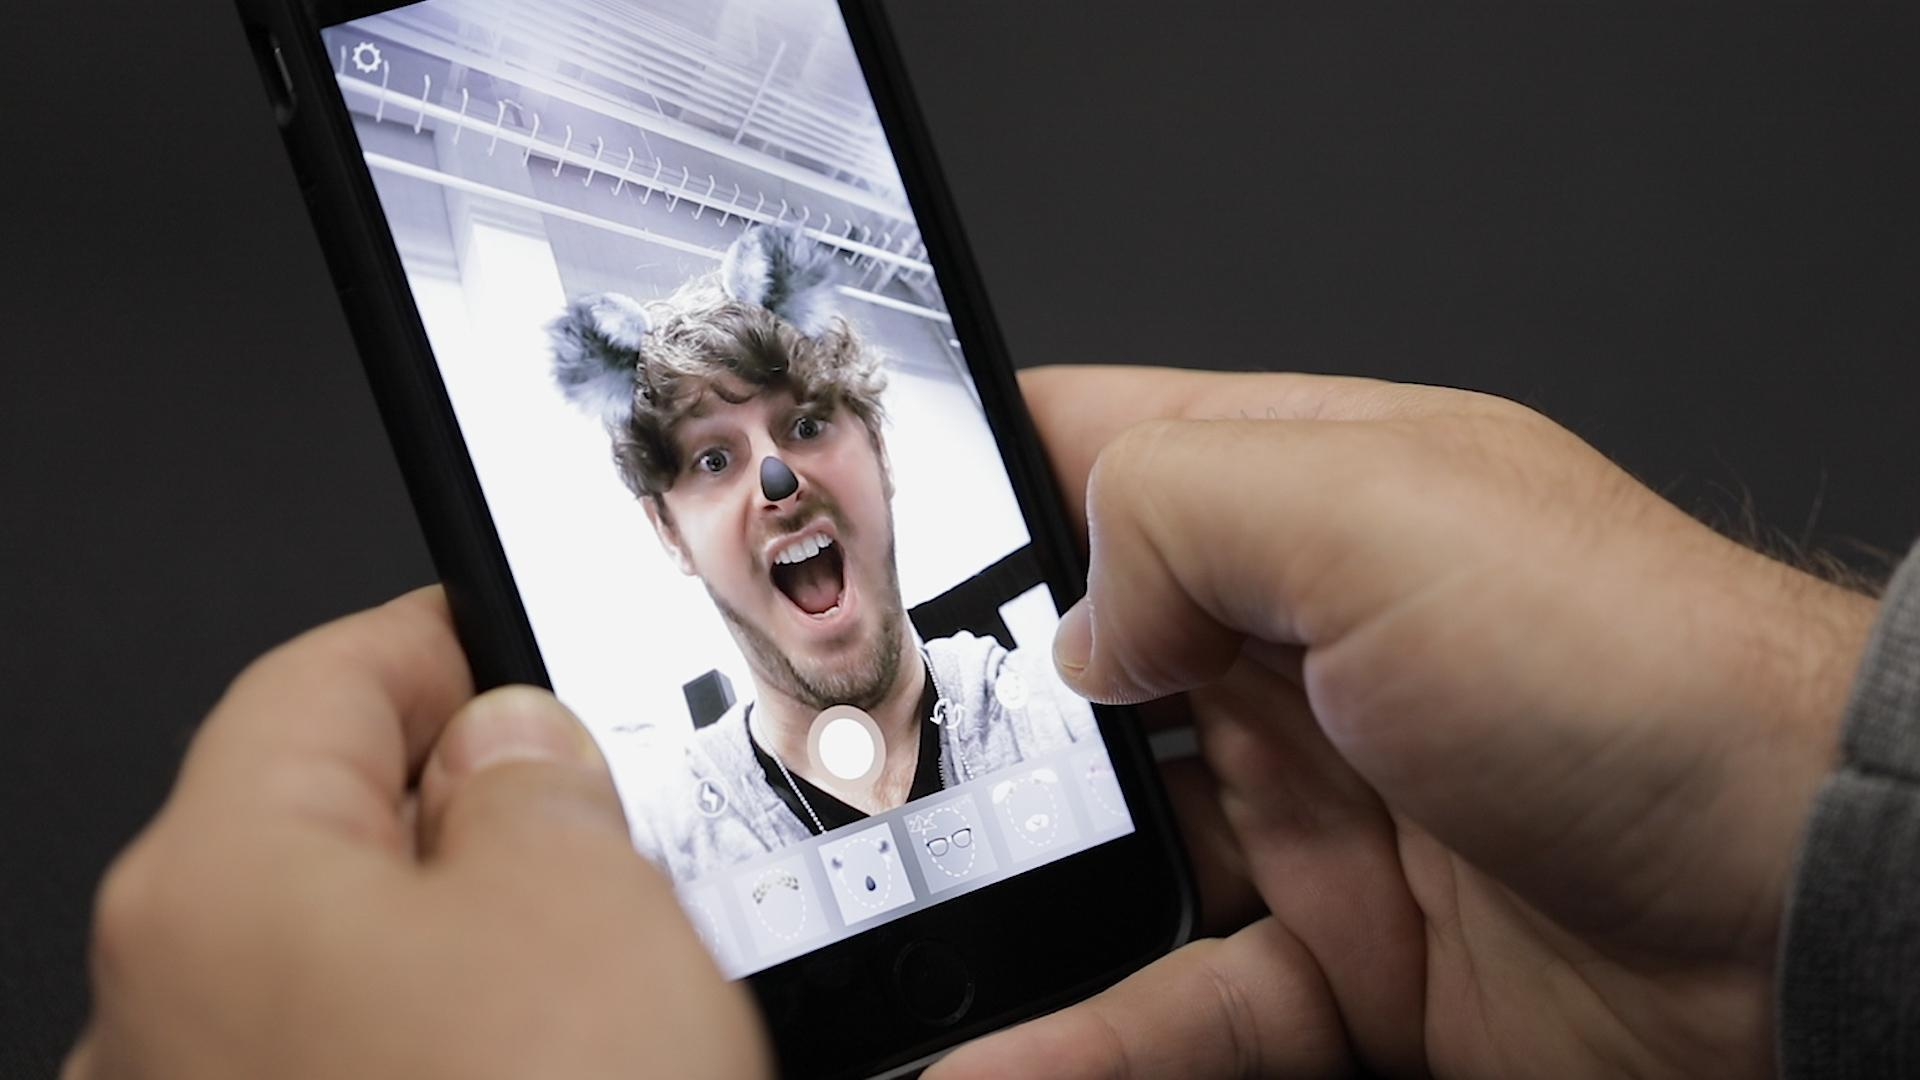 Instagram launches Snapchat-style Selfie Filters